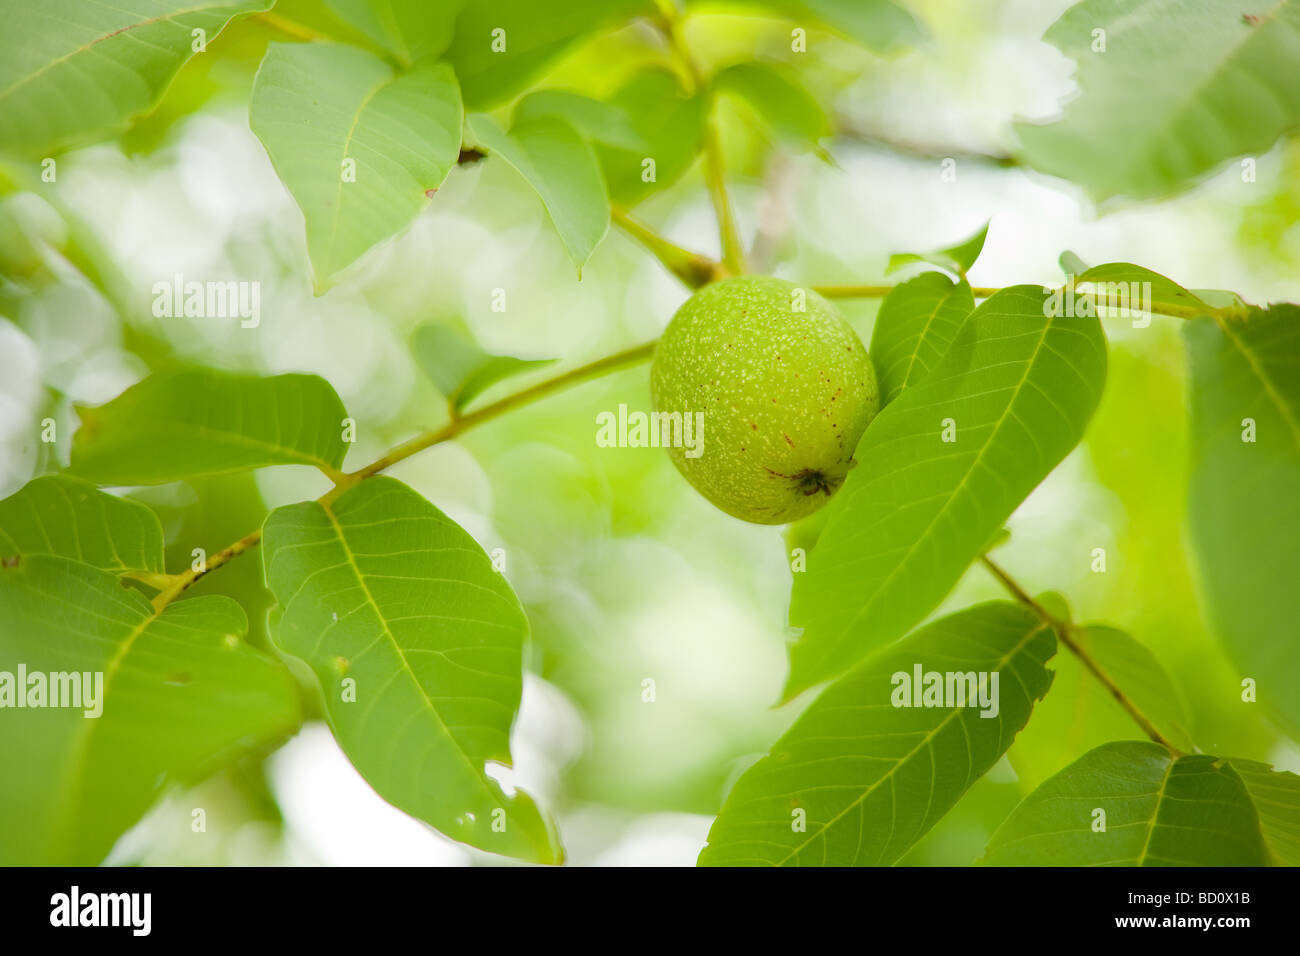 Green nut hanging on a tree branch between leaves - Stock Image